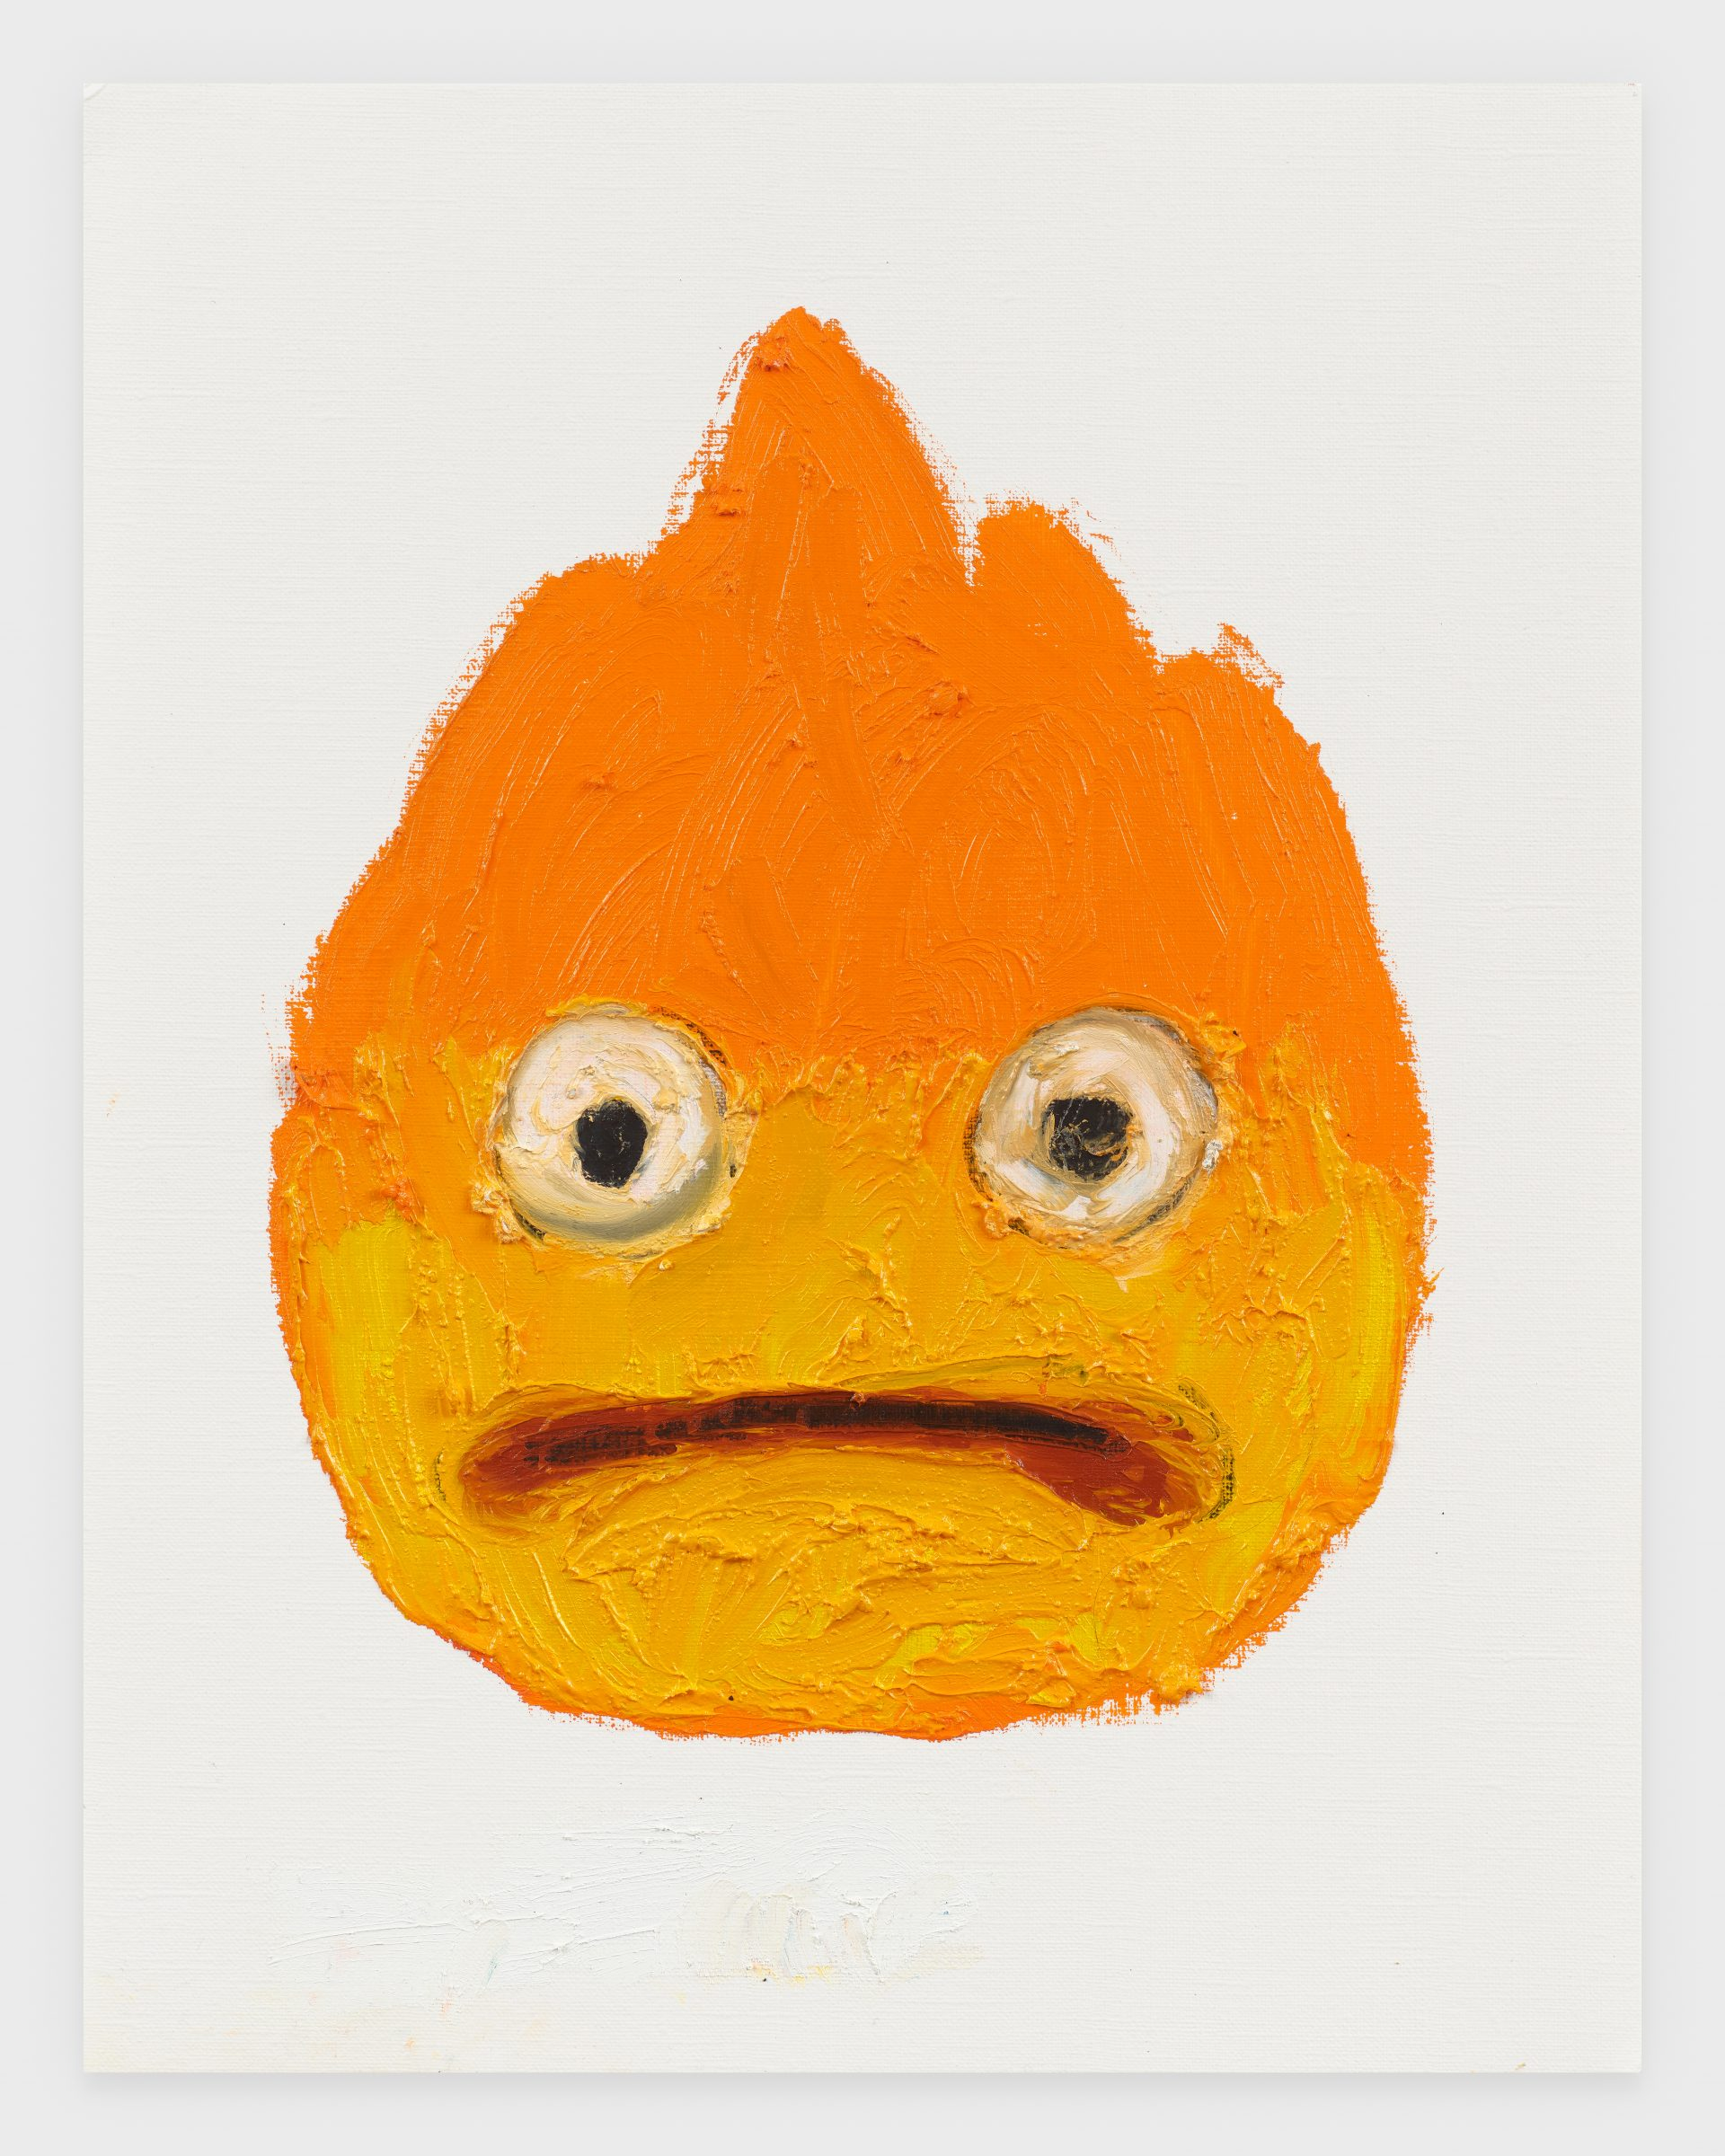 Calcifer, 2020, Oil stick on archival paper, 11 x 14 inches